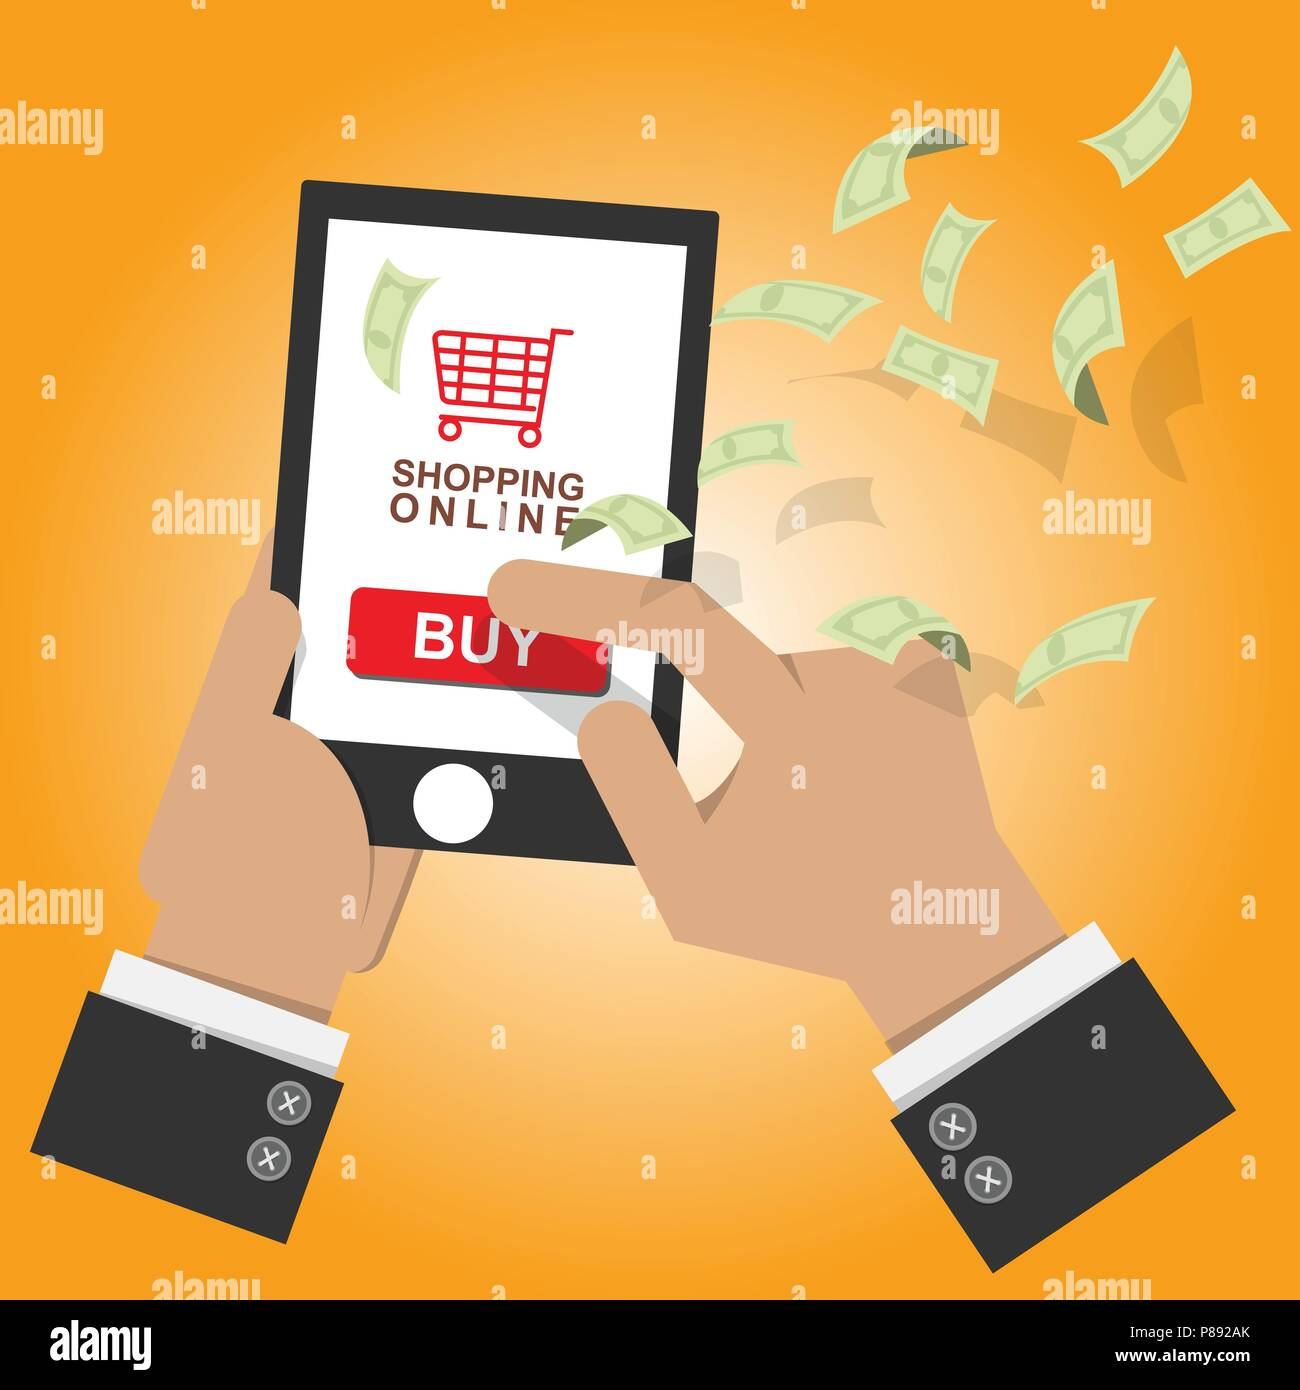 8a192b29 vector illustration. online shop icon on mobile smart phone with screen  sell and buy with money bank note flow at background. online shopping  concept